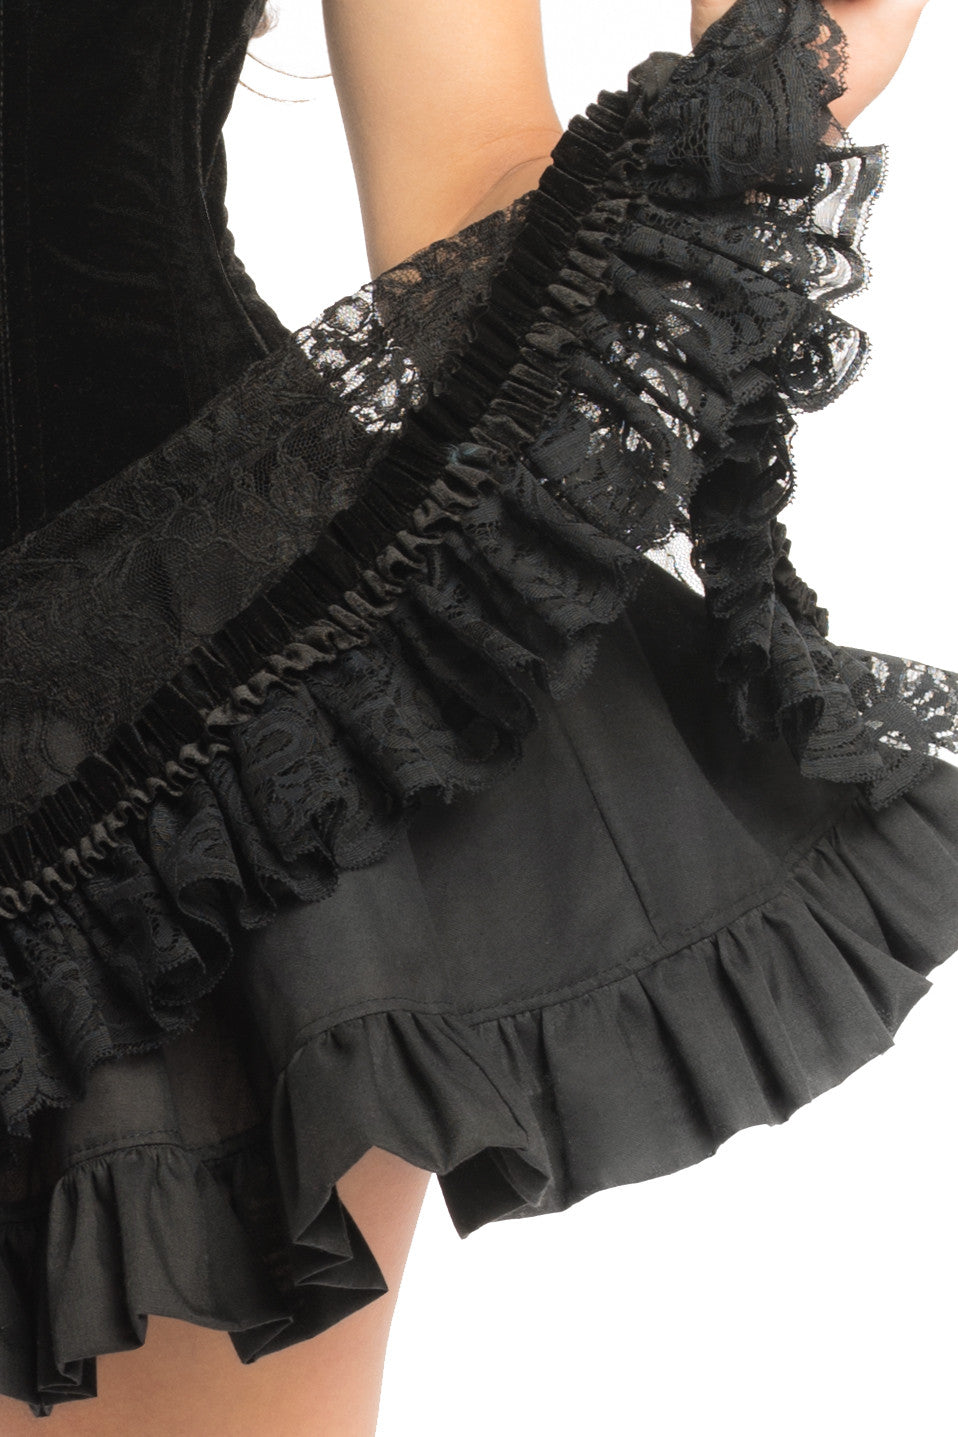 Black Red Riding Hood Skirt